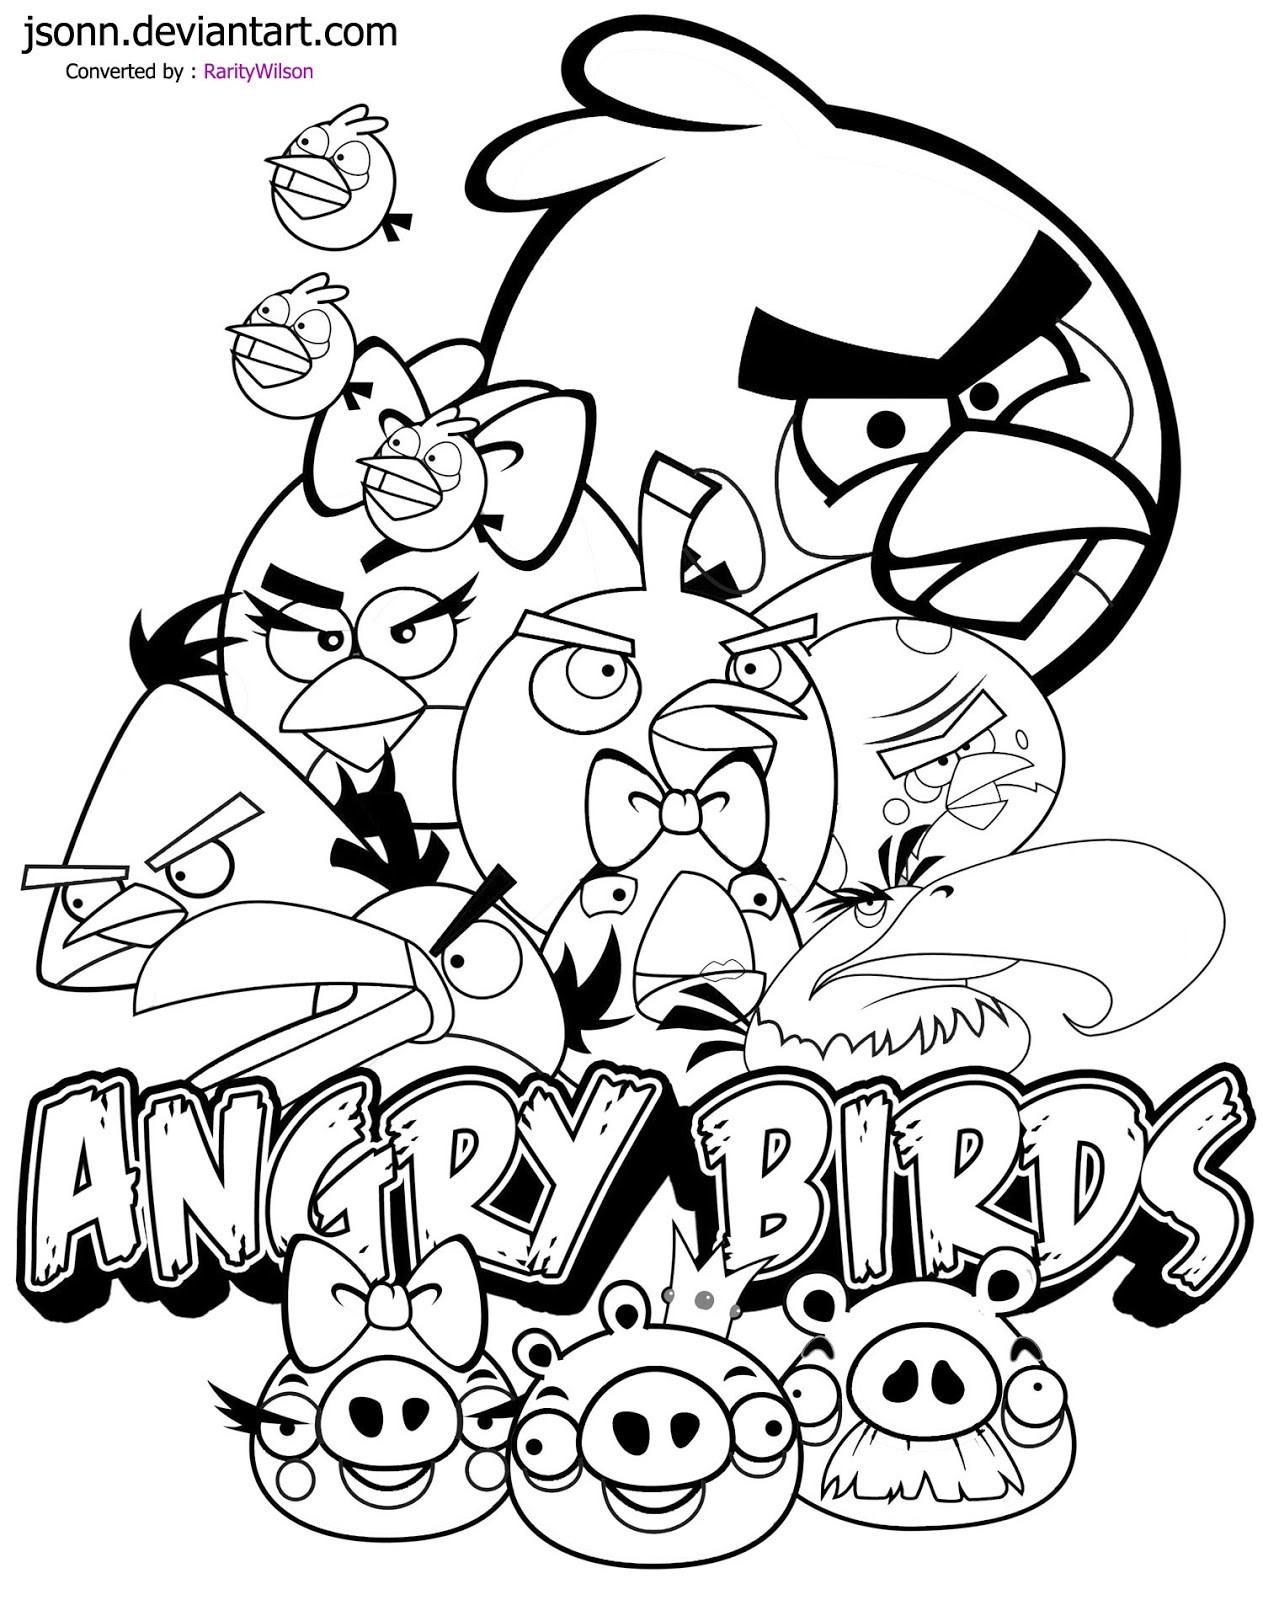 Best ideas about Angry Birds Coloring Pages For Kids Printable . Save or Pin December 2012 Now.